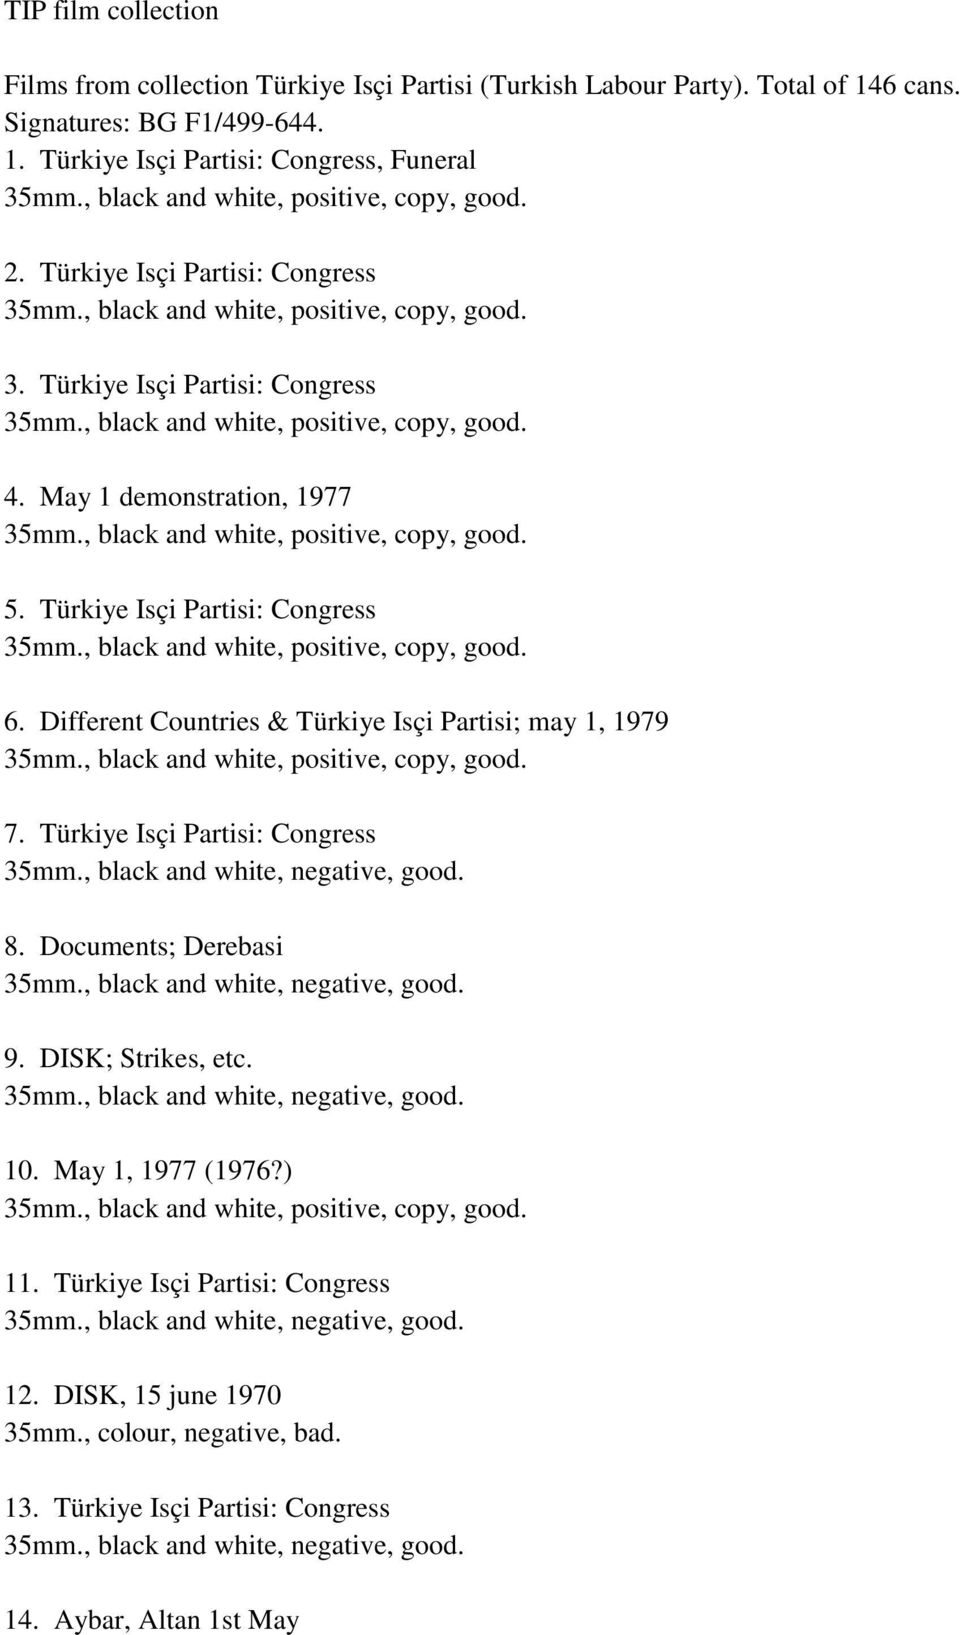 Different Countries & Türkiye Isçi Partisi; may 1, 1979 7. Türkiye Isçi Partisi: Congress 8. Documents; Derebasi 9. DISK; Strikes, etc. 10.